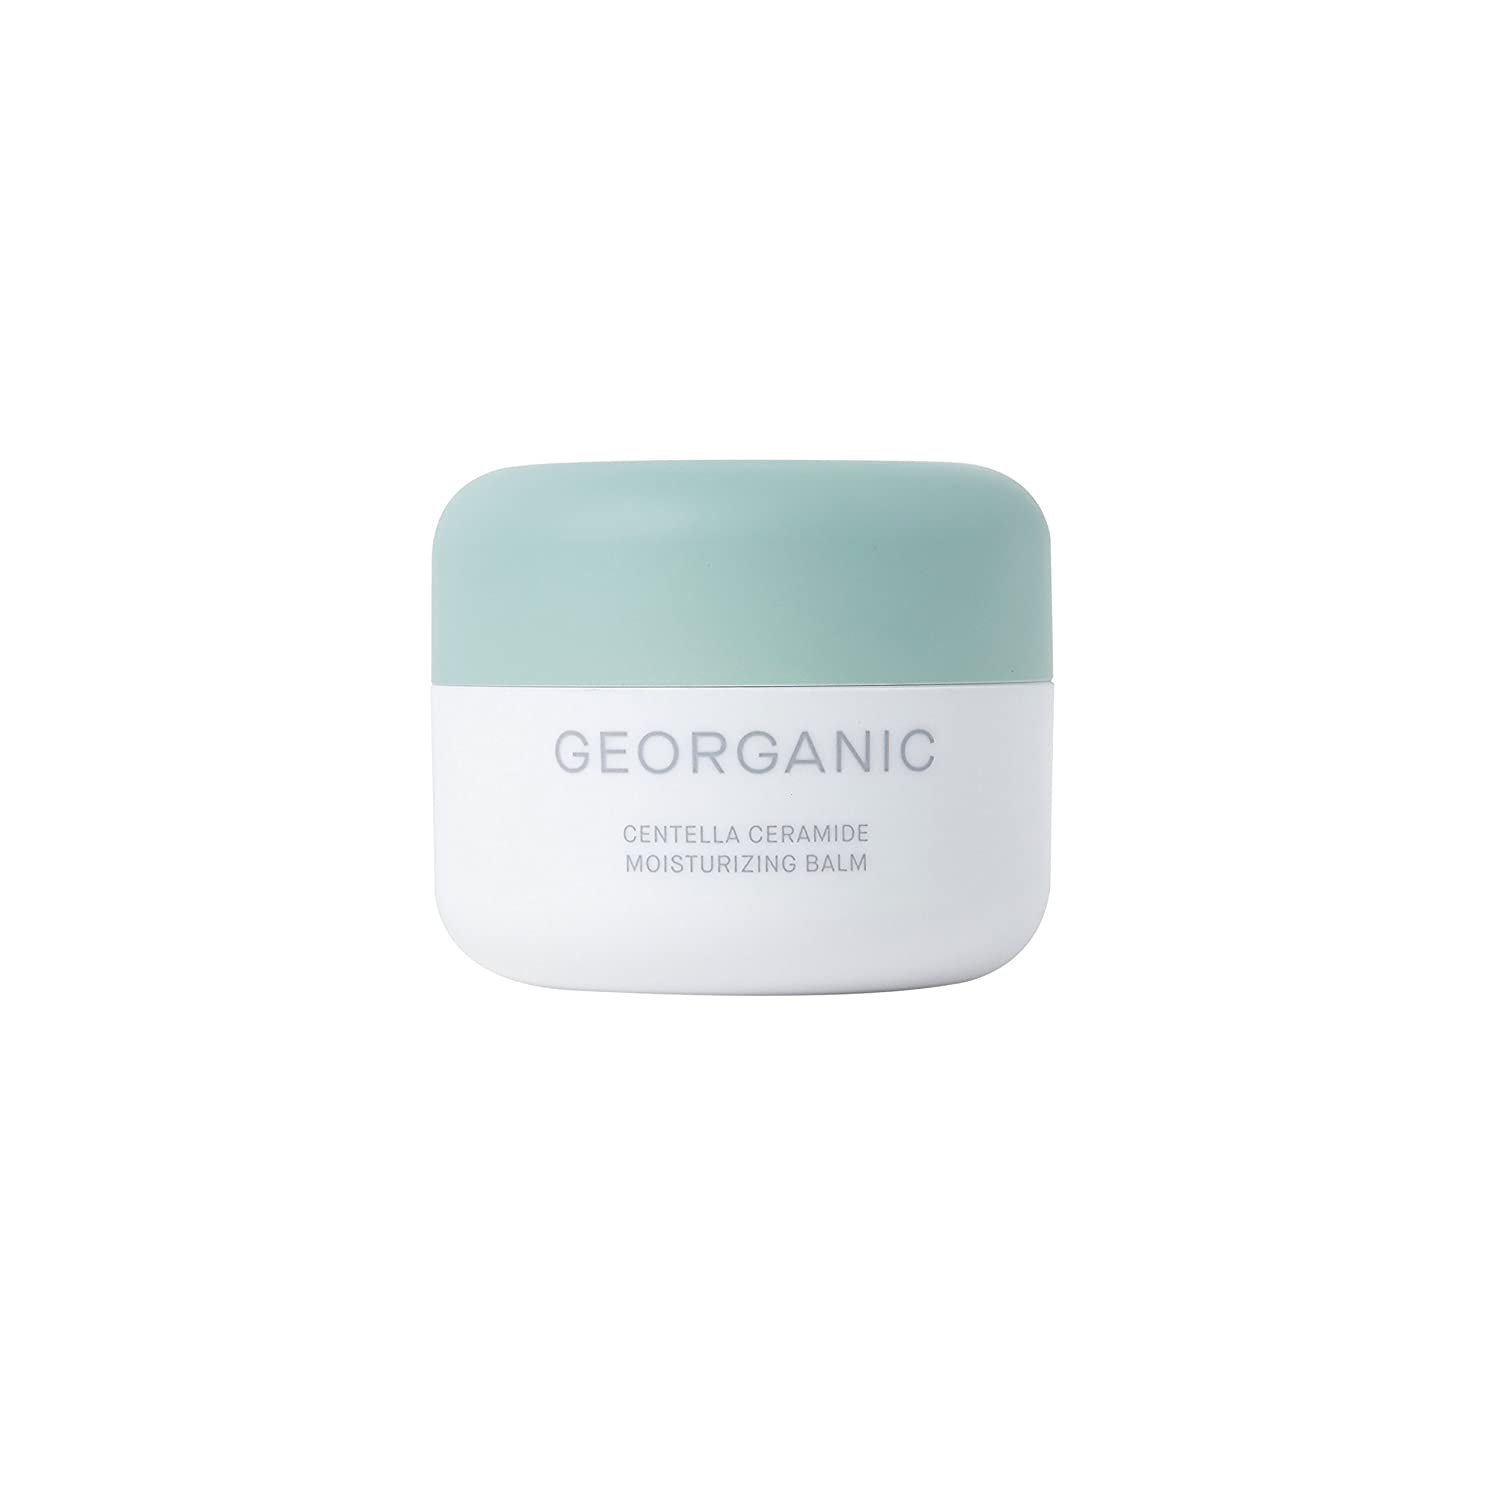 [GEORGANIC] Centella Ceramide Moisturizing Balm 45ml/1.52 fl.oz - Best Organic, Natural, Clean Beauty Moisturizer with Centella Asiatica (57%) from Korea. Great for troublesome areas and dry skin